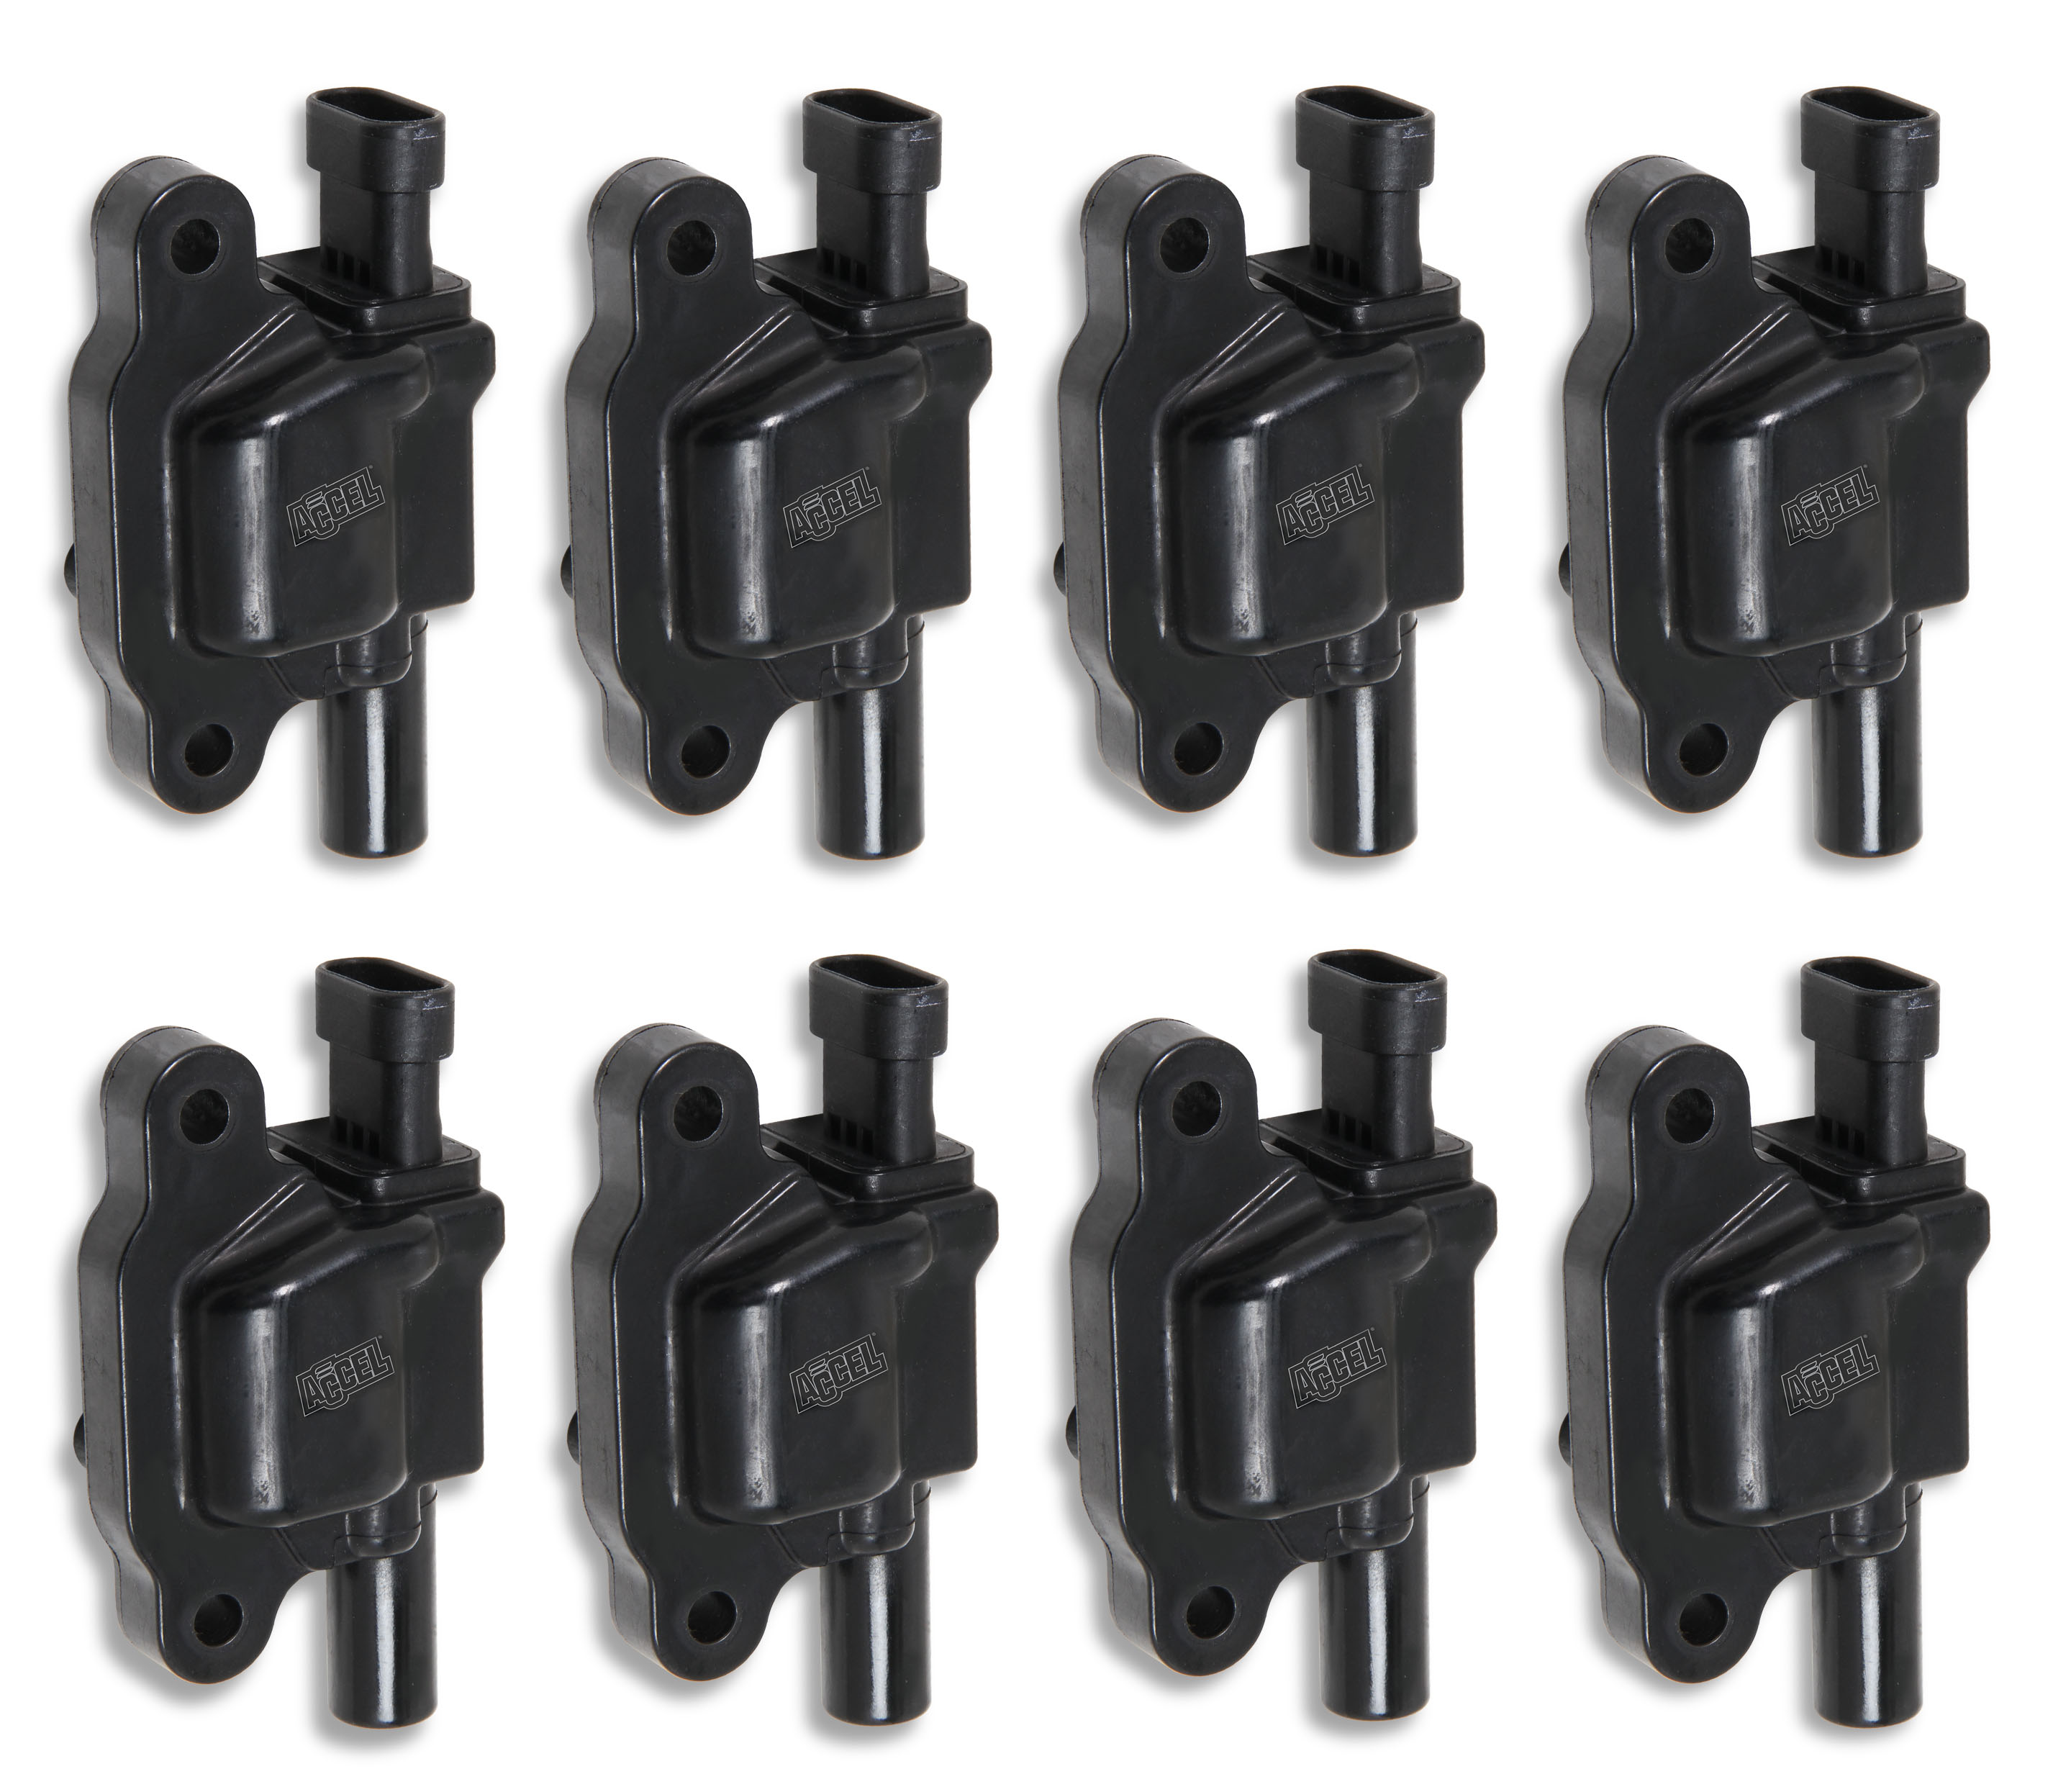 LS2/LS3/LS7 Accel Black Super Coils - Set of 8